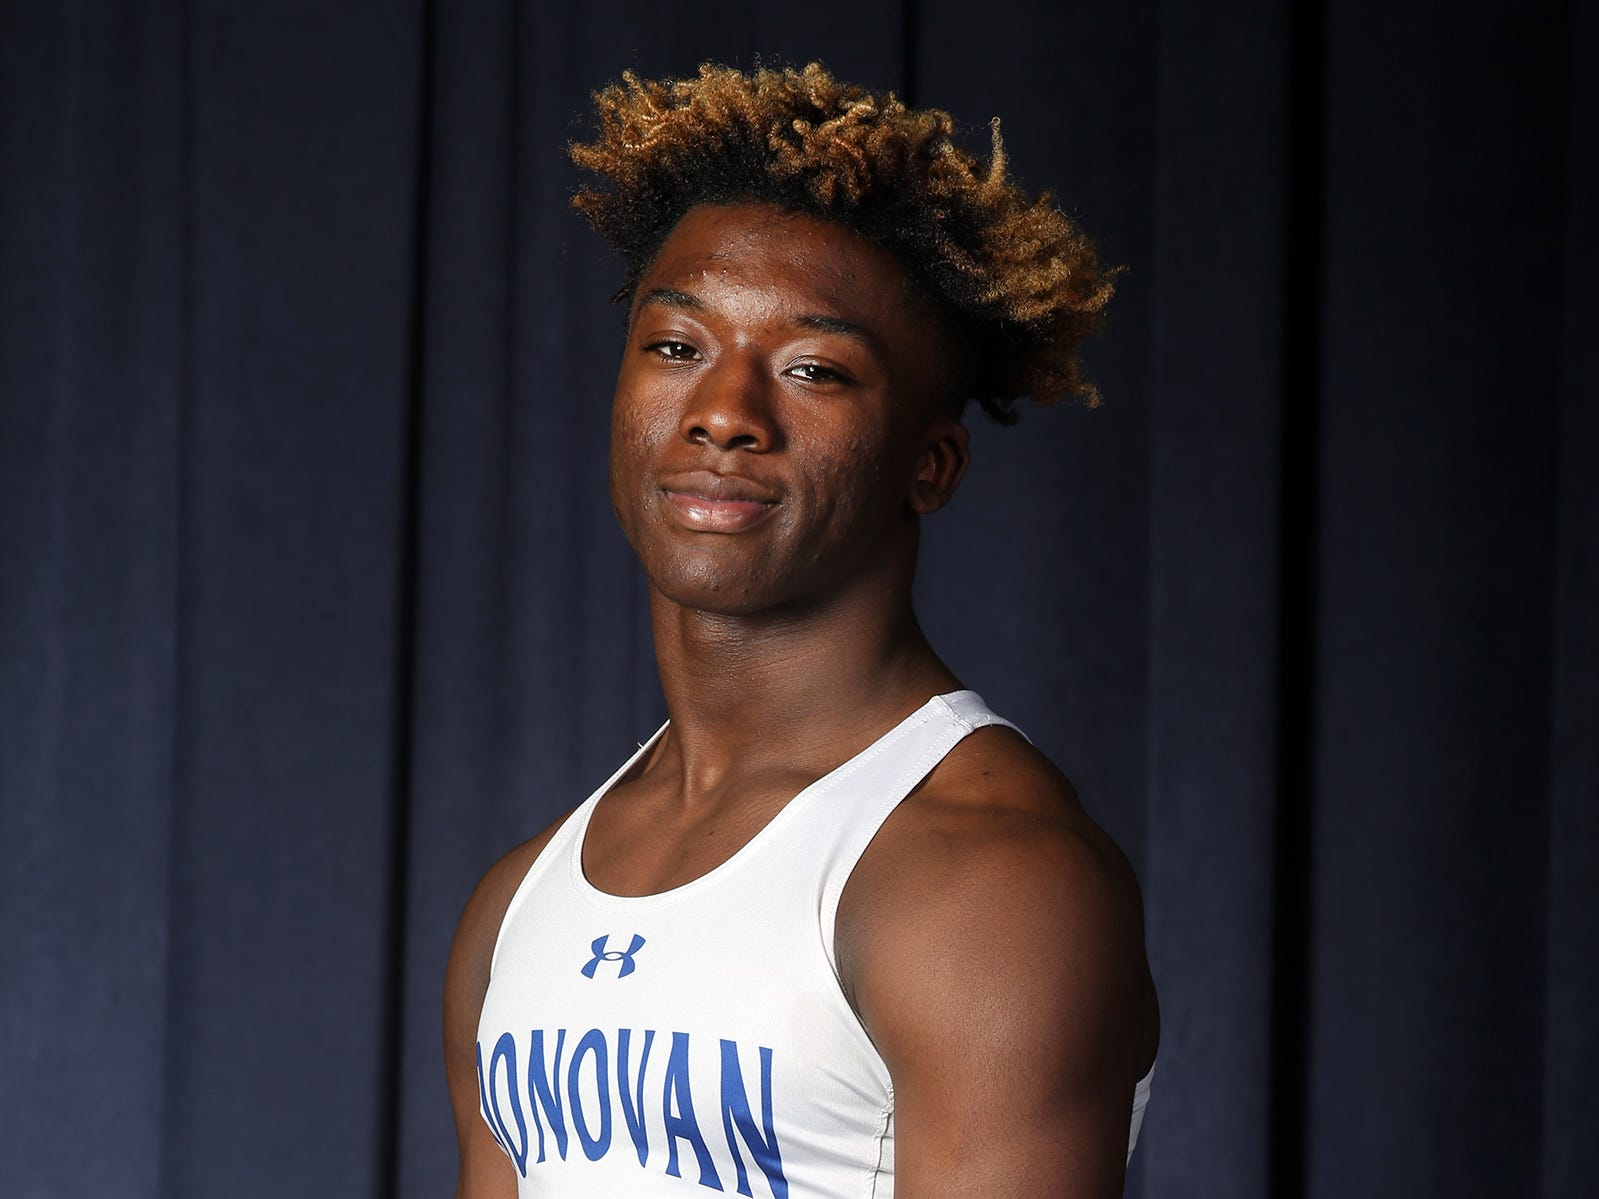 James Bivins of Donovan Catholic during the All-Shore boys track team photo shoot at the Asbury Park Press in Neptune, NJ Thursday, March 14, 2019.